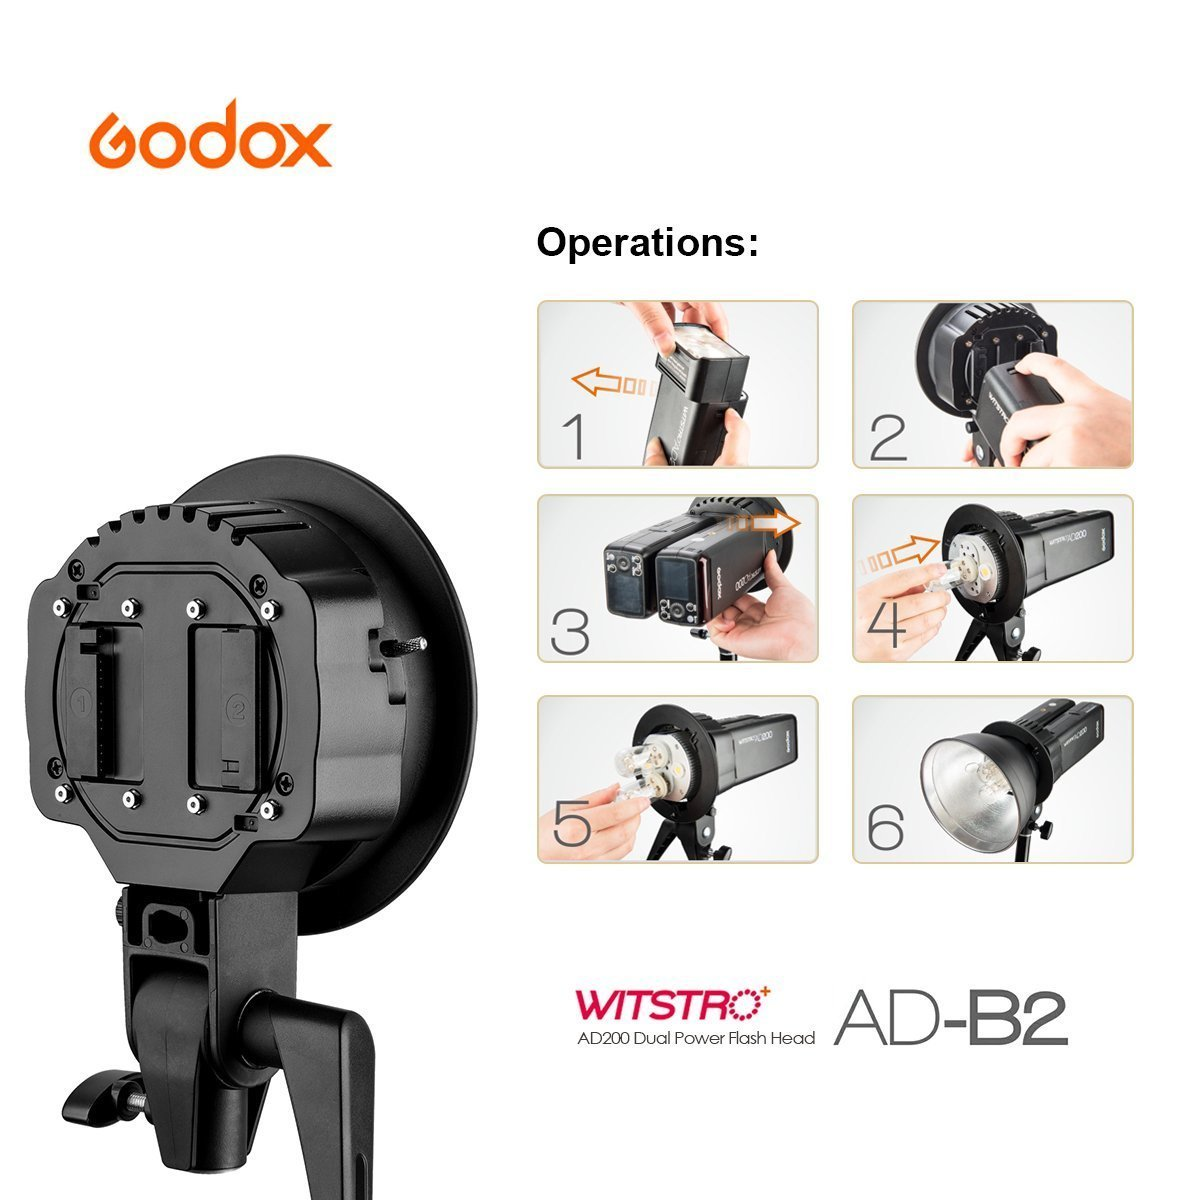 Godox AD-B2 Dual Tubes Light Head S-Type Bowens Mount Flash Light Head Holder Bracket Compatible Godox AD200 Speedlite Achieve 400W Power Output+CONXTRUE USB LED